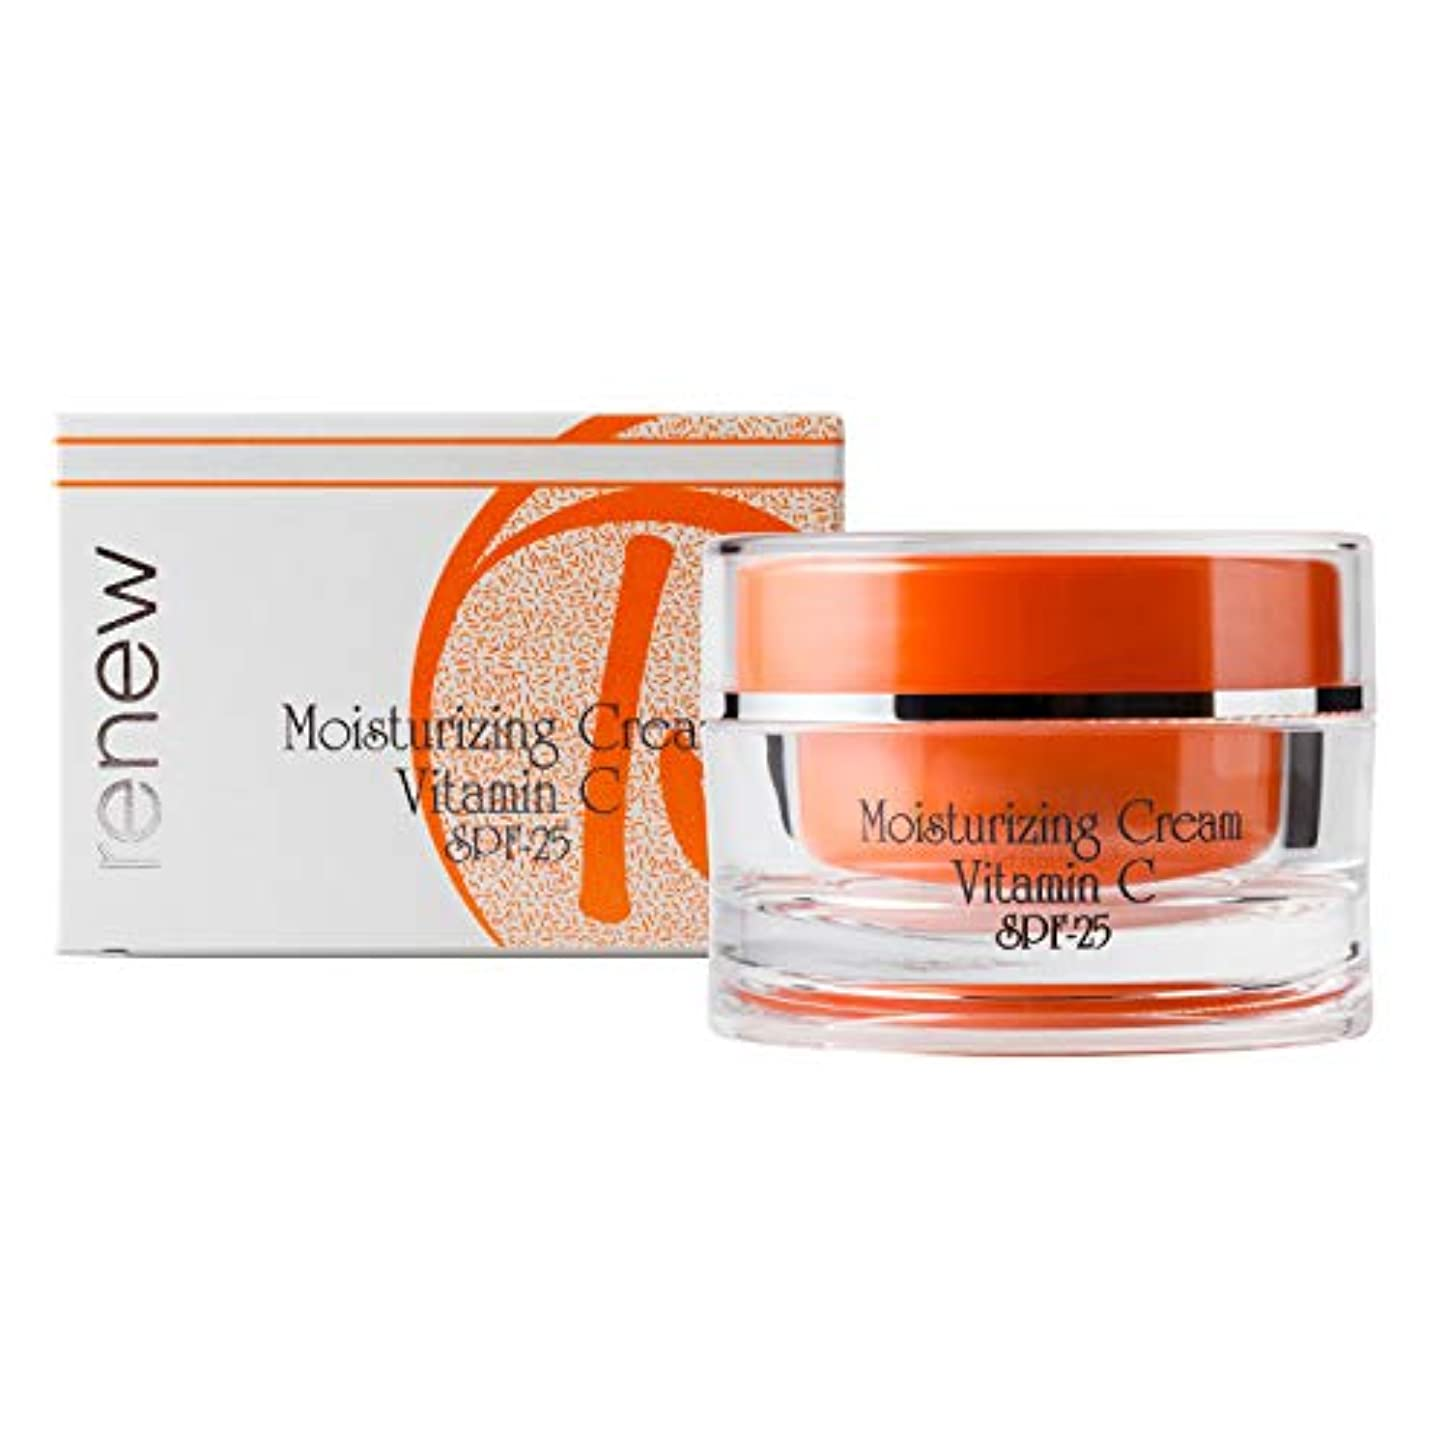 Renew Moisturizing Cream Vitamin C SPF-25 50ml